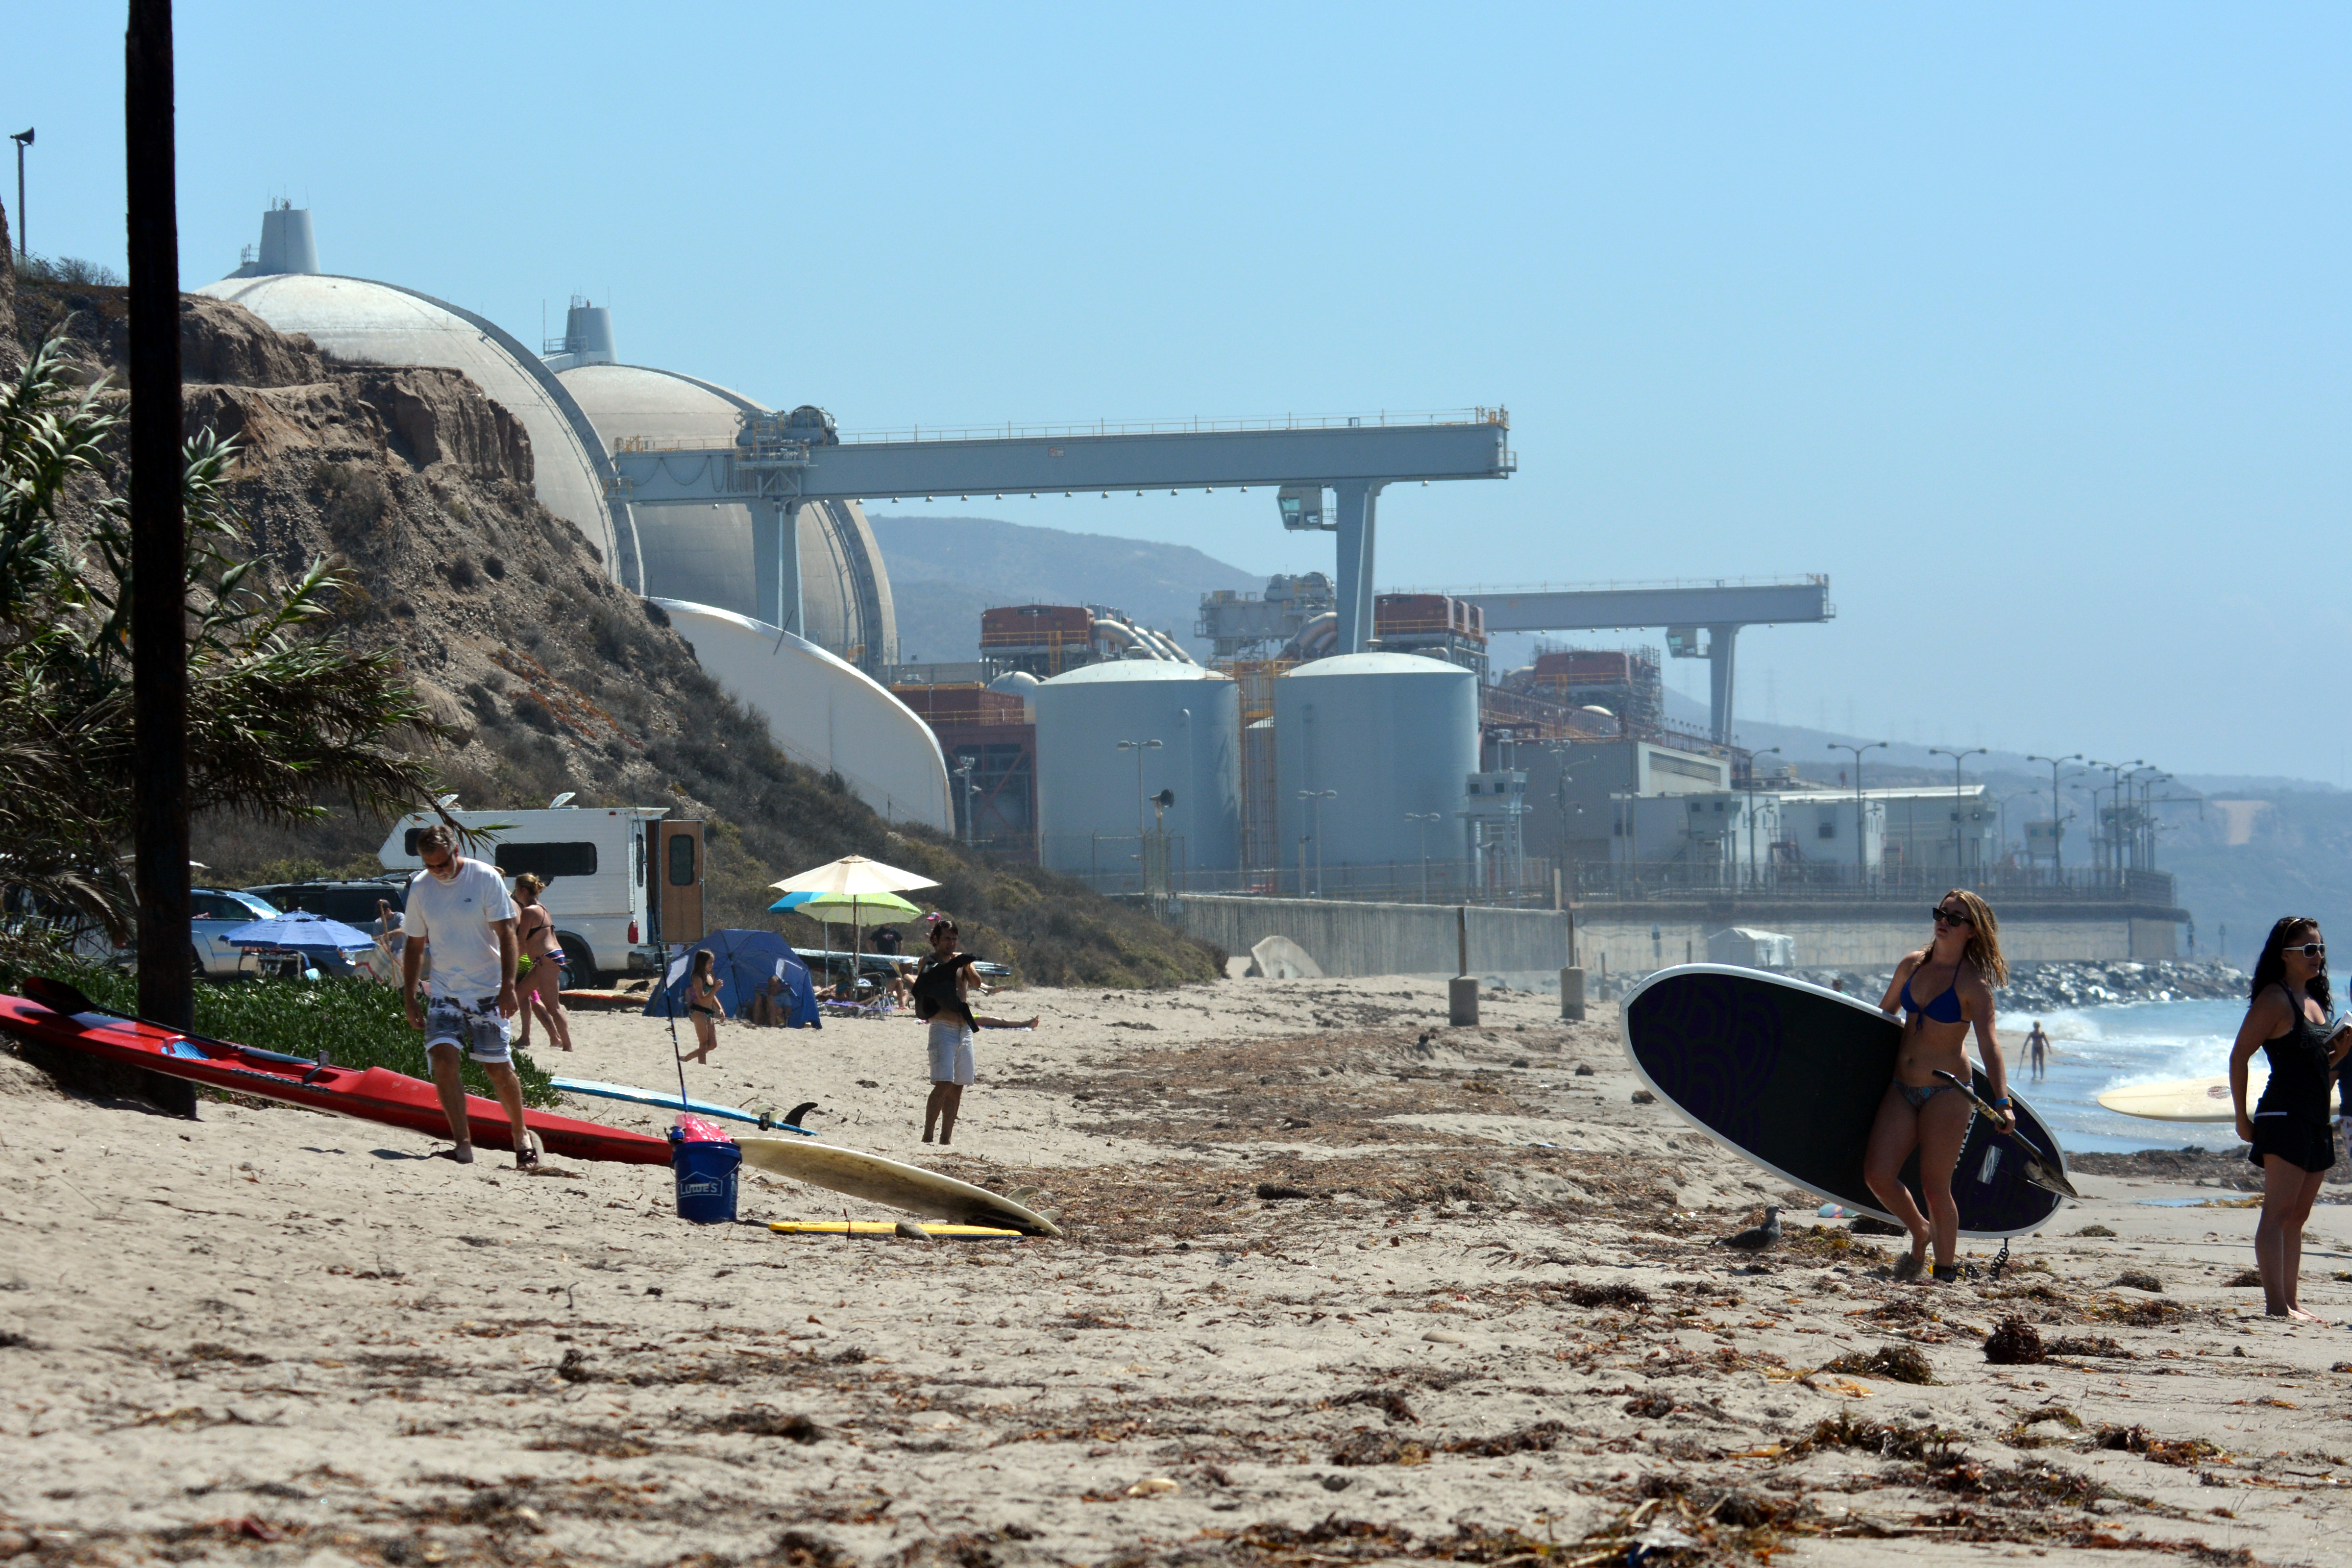 San Onofre Nuclear Generating Station - Wikipedia